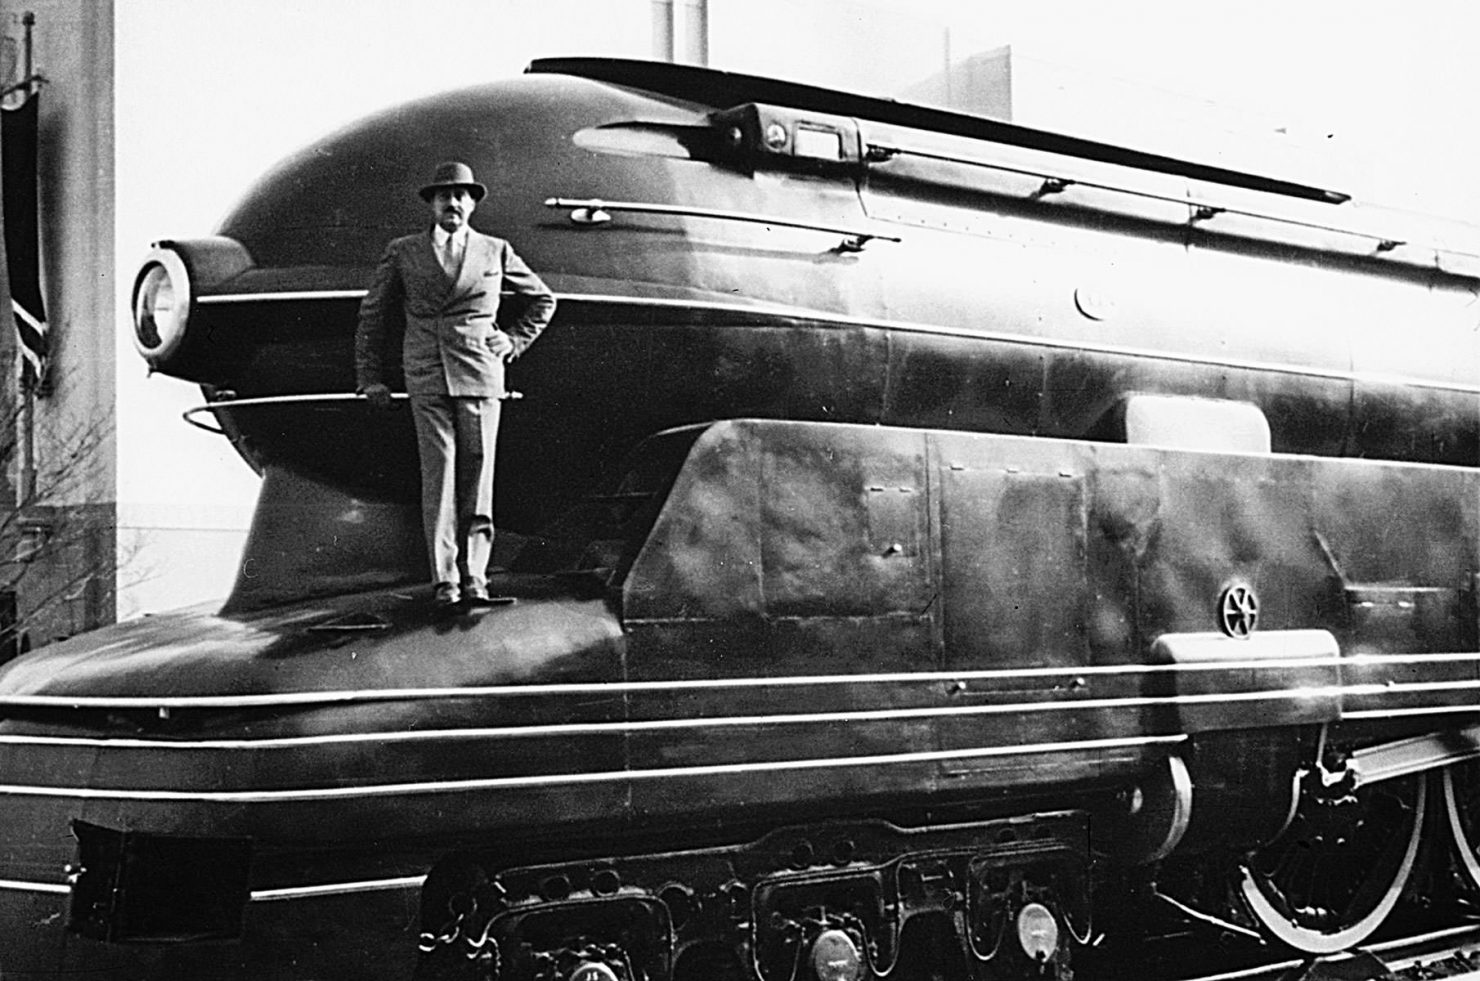 Raymond Loewy 1480x981 - Film - Raymond Loewy: Father of Industrial Design